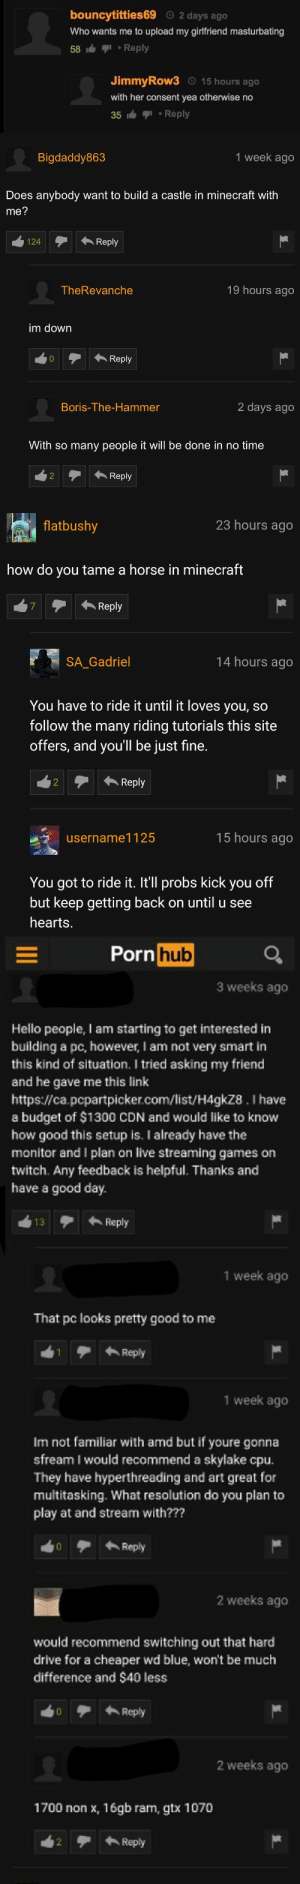 officialyasen: kroncw:  nothingbutmeme: Pornhub comments are our only hope better than youtube    #it's because everyone is in the post nut state of mind   : bouncytitties69 2 days ago  Who wants me to upload my girlfriend masturbating  58 -Reply  JimmyRow3 15 hours ago  with her consent yea otherwise no  35 1-Reply   Bigdaddy863  1 week ago  Does anybody want to build a castle in minecraft with  me?  124Reply  124  TheRevanche  19 hours ago  im down  0  Reply  Boris-The-Hammer  2 days ago  With so many people it will be done in no time  2Reply   flatbushy  23 hours ago  how do you tame a horse in minecraft  Reply  SA Gadriel  14 hours ago  You have to ride it until it loves you, so  follow the many riding tutorials this site  offers, and you'll be just fine.  2  Reply  username1125  15 hours ago  You got to ride it. It'll probs kick you off  but keep getting back on until u see  hearts.   Porn  hub  3 weeks ago  Hello people, I am starting to get interested in  building a pc, however, I am not very smart in  this kind of situation. I tried asking my friend  and he gave me this link  https://ca.pcpartpicker.com/list/H4gkz8. I have  a budget of $1300 CDN and would like to know  how good this setup is. I already have the  monitor and I plan on live streaming games on  twitch. Any feedback is helpful. Thanks and  have a good day.  3Reply  1 week ago  That pc looks pretty good to me  Reply  1 week ago  Im not familiar with amd but if youre gonna  sfream I would recommend a skylake cpu  They have hyperthreading and art great for  multitasking. What resolution do you plan to  play at and stream with???  0 Reply  2 weeks ago  would recommend switching out that hard  drive for a cheaper wd blue, won't be much  difference and $40 less  0  Reply  2 weeks ago  1700 non x, 16gb ram, gtx 1070  2 Reply officialyasen: kroncw:  nothingbutmeme: Pornhub comments are our only hope better than youtube    #it's because everyone is in the post nut state of mind